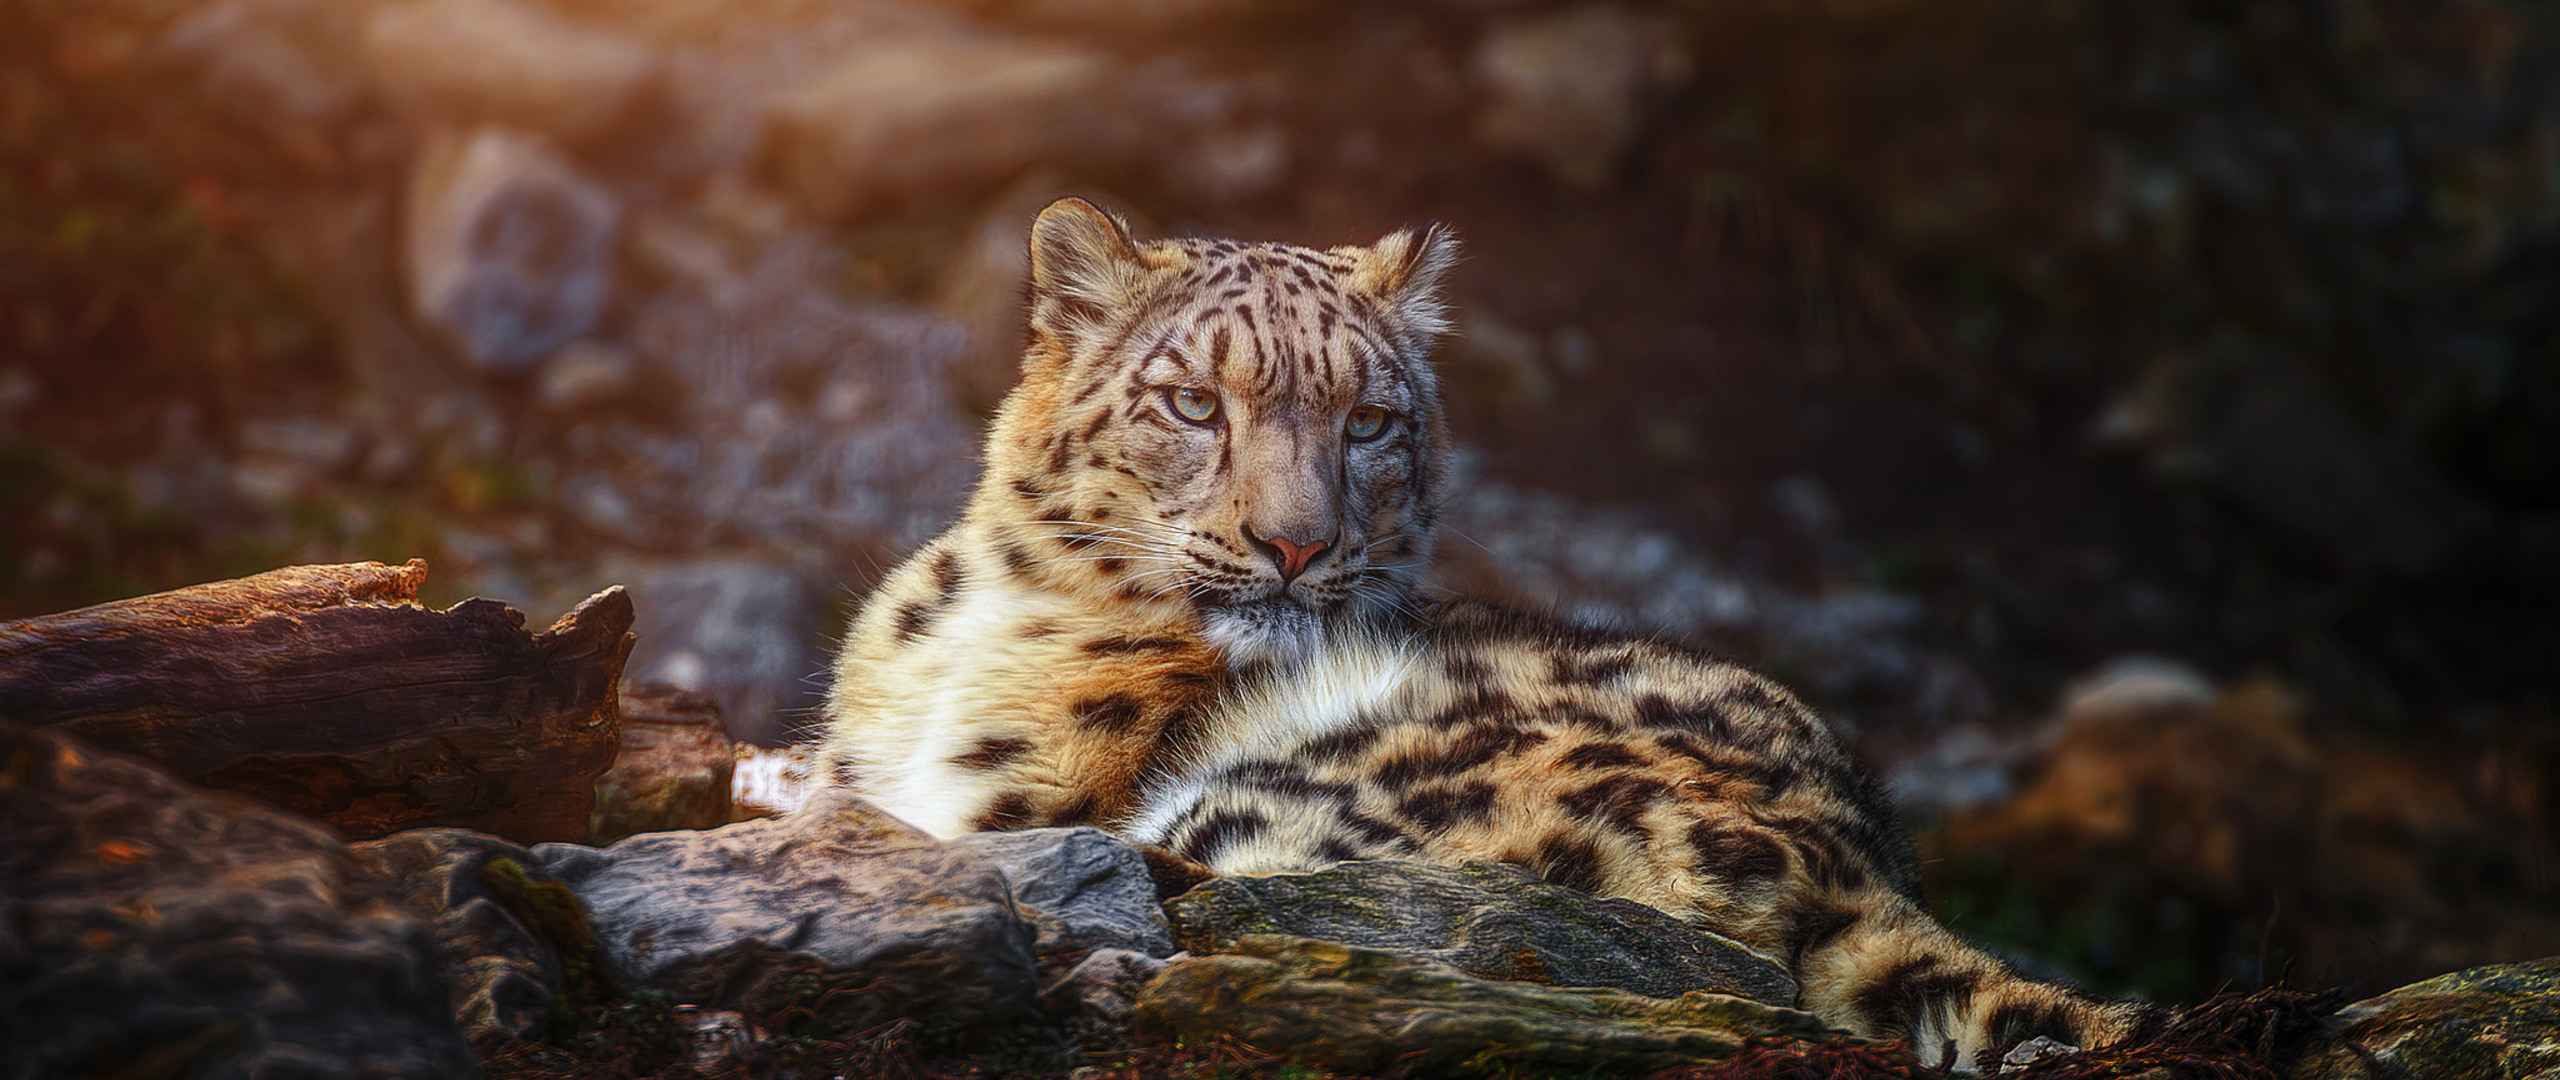 snow-leopard-wild-animal-w6.jpg